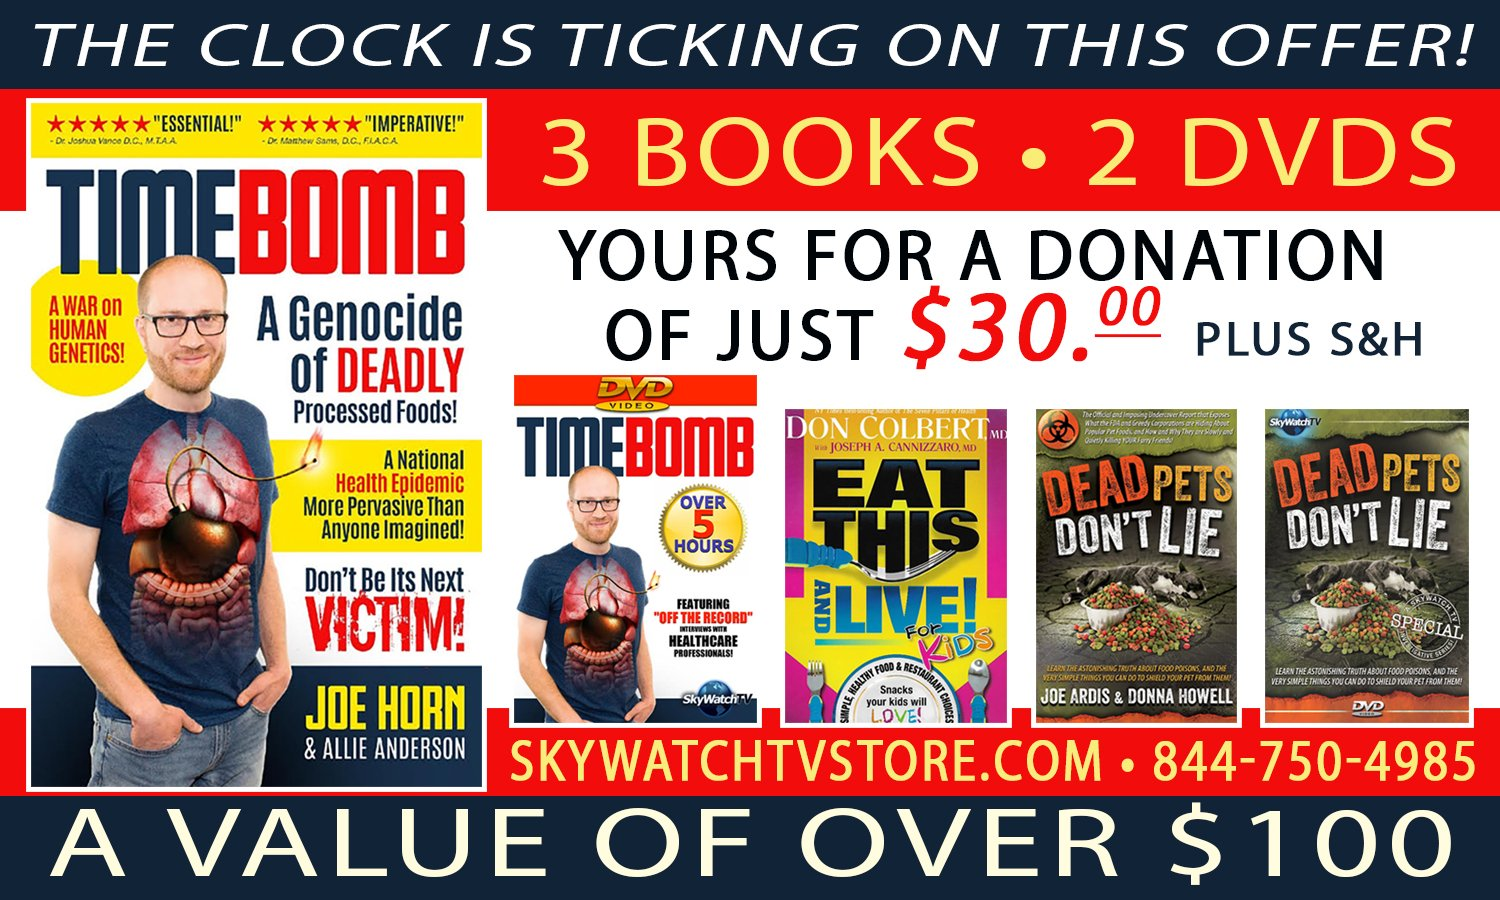 FREE BOOKS & DVDS WITH TIMEBOMB SPECIAL OFFER AVAILABLE FOR A VERY LIMITED TIME ONLY!!